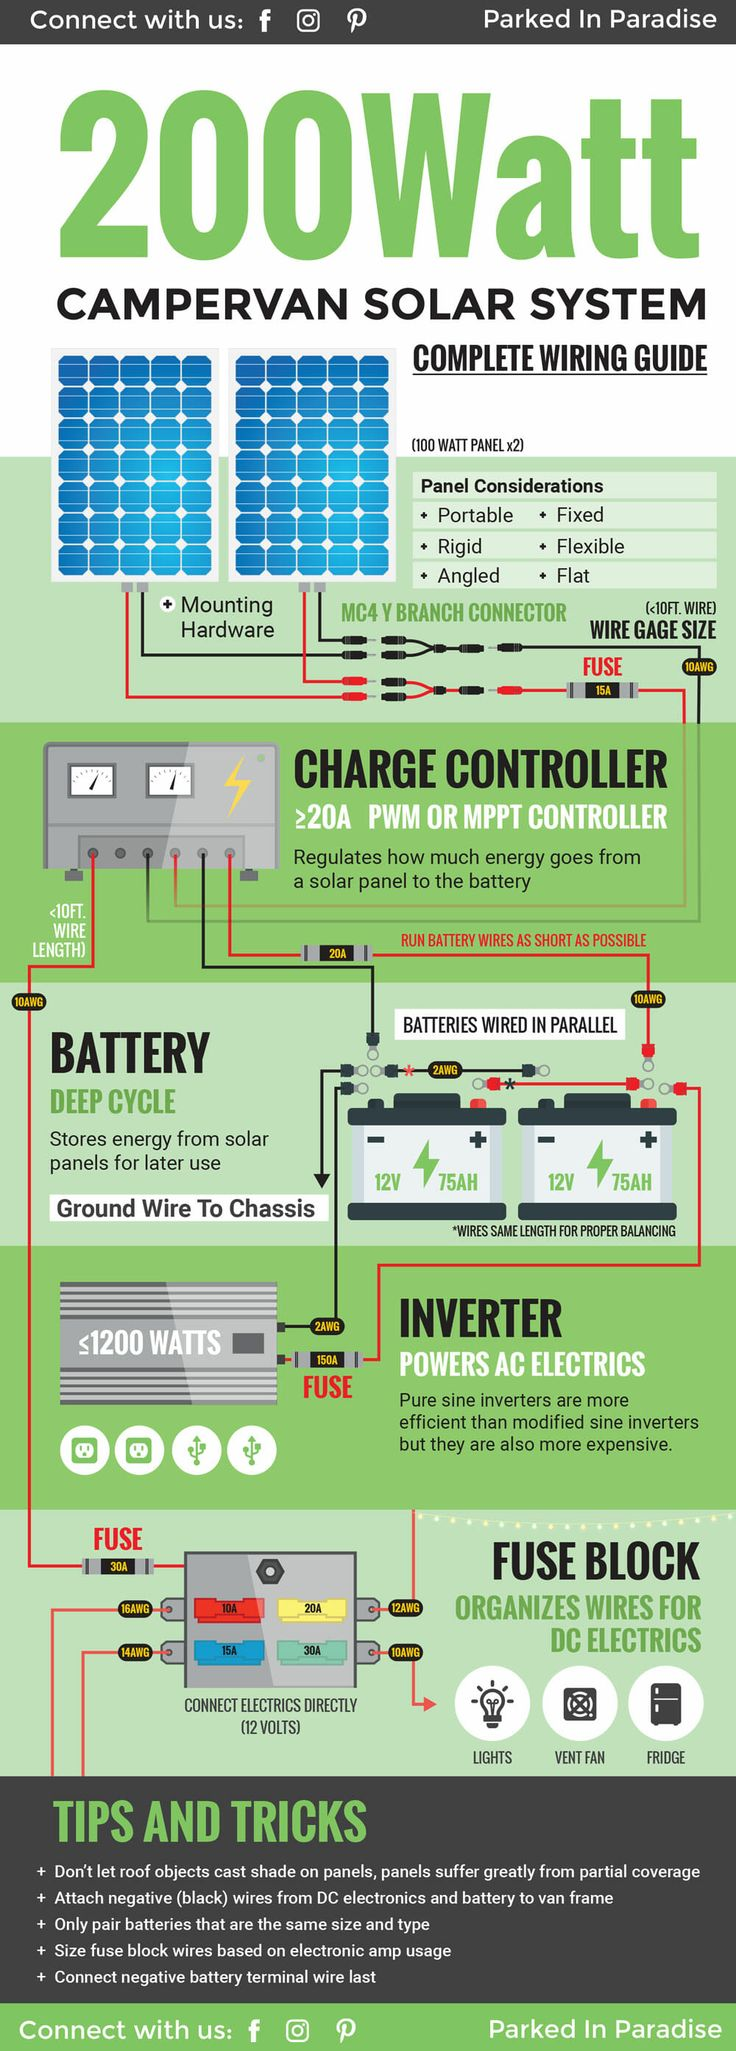 This solar panel graphic is so detailed and perfect for my next van build! Now I'll know exactly how to wire up the solar panel system for my camper van! I'm excited to get started with the #vanlife!